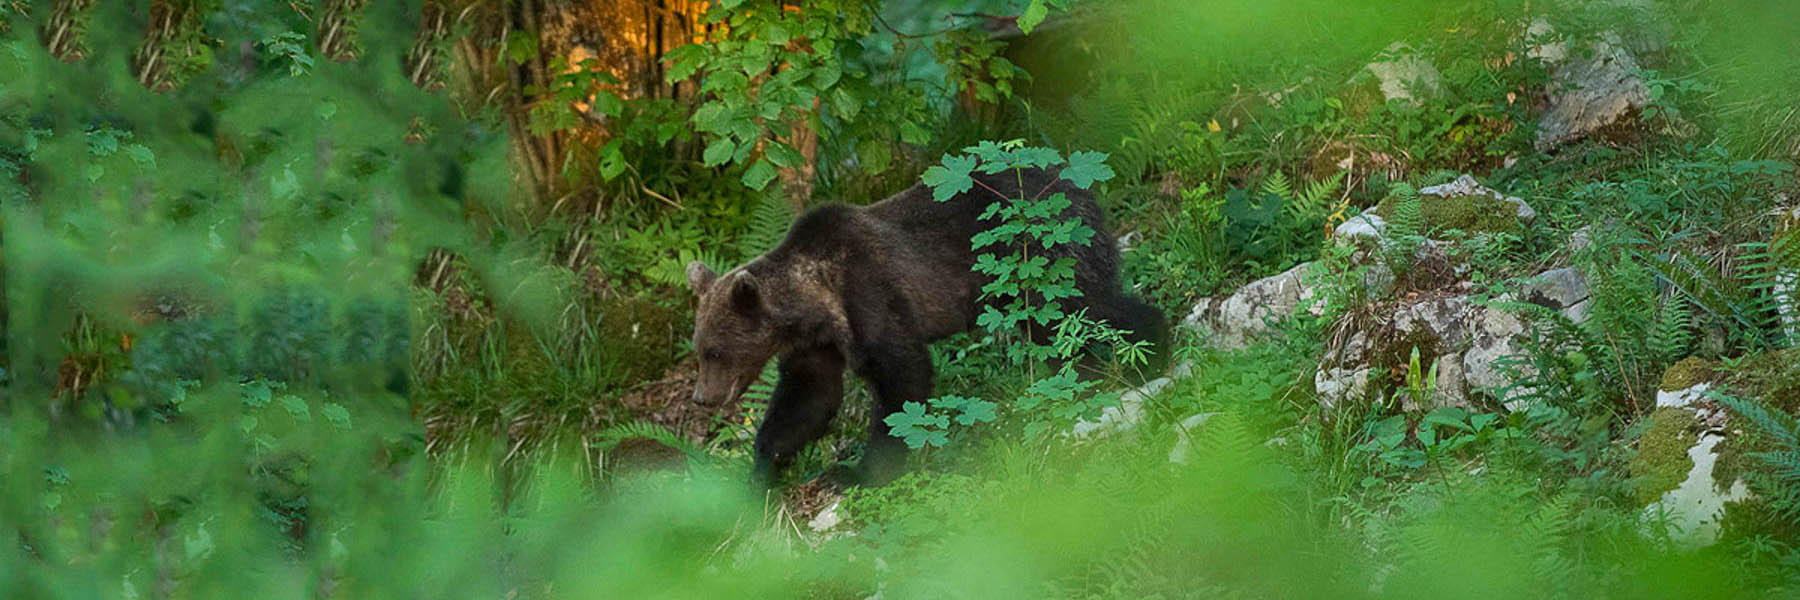 slovenia brown bears